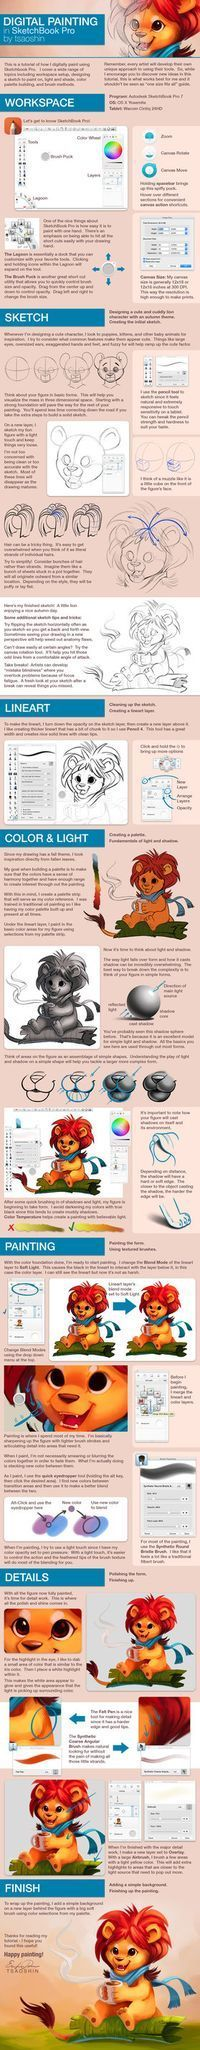 The image is HUGE so give it a little bit to load. The folks at autodesk-sketchbook commissioned this tutorial covering how I digitally paint. This is my compete process from start to finish ...